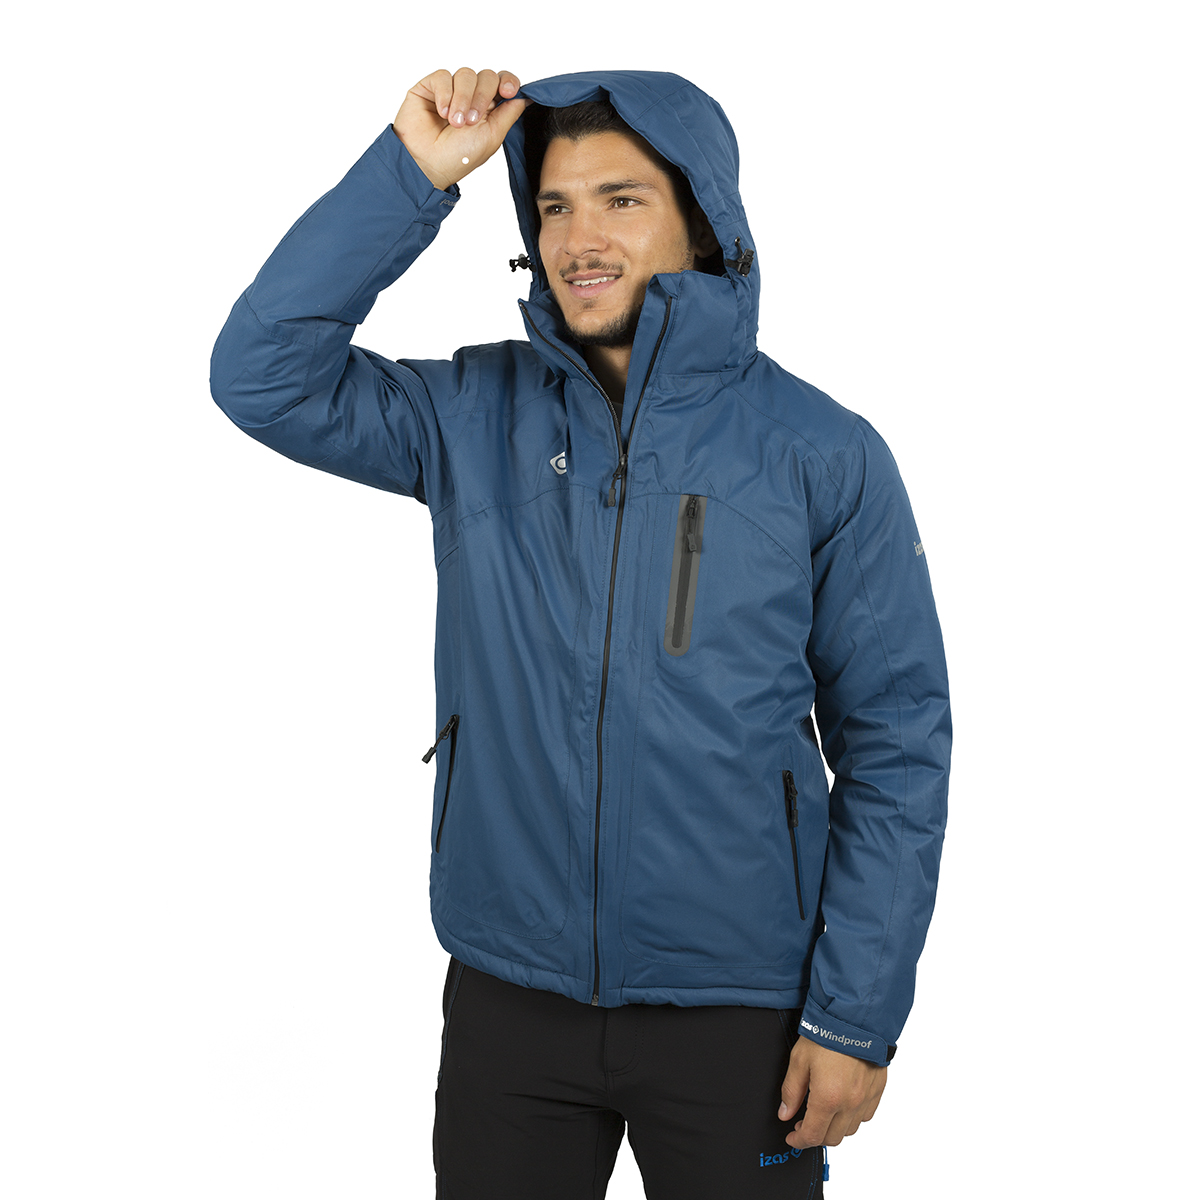 MAN'S NALUNS PADDED JACKET WITH HOOD BLUE